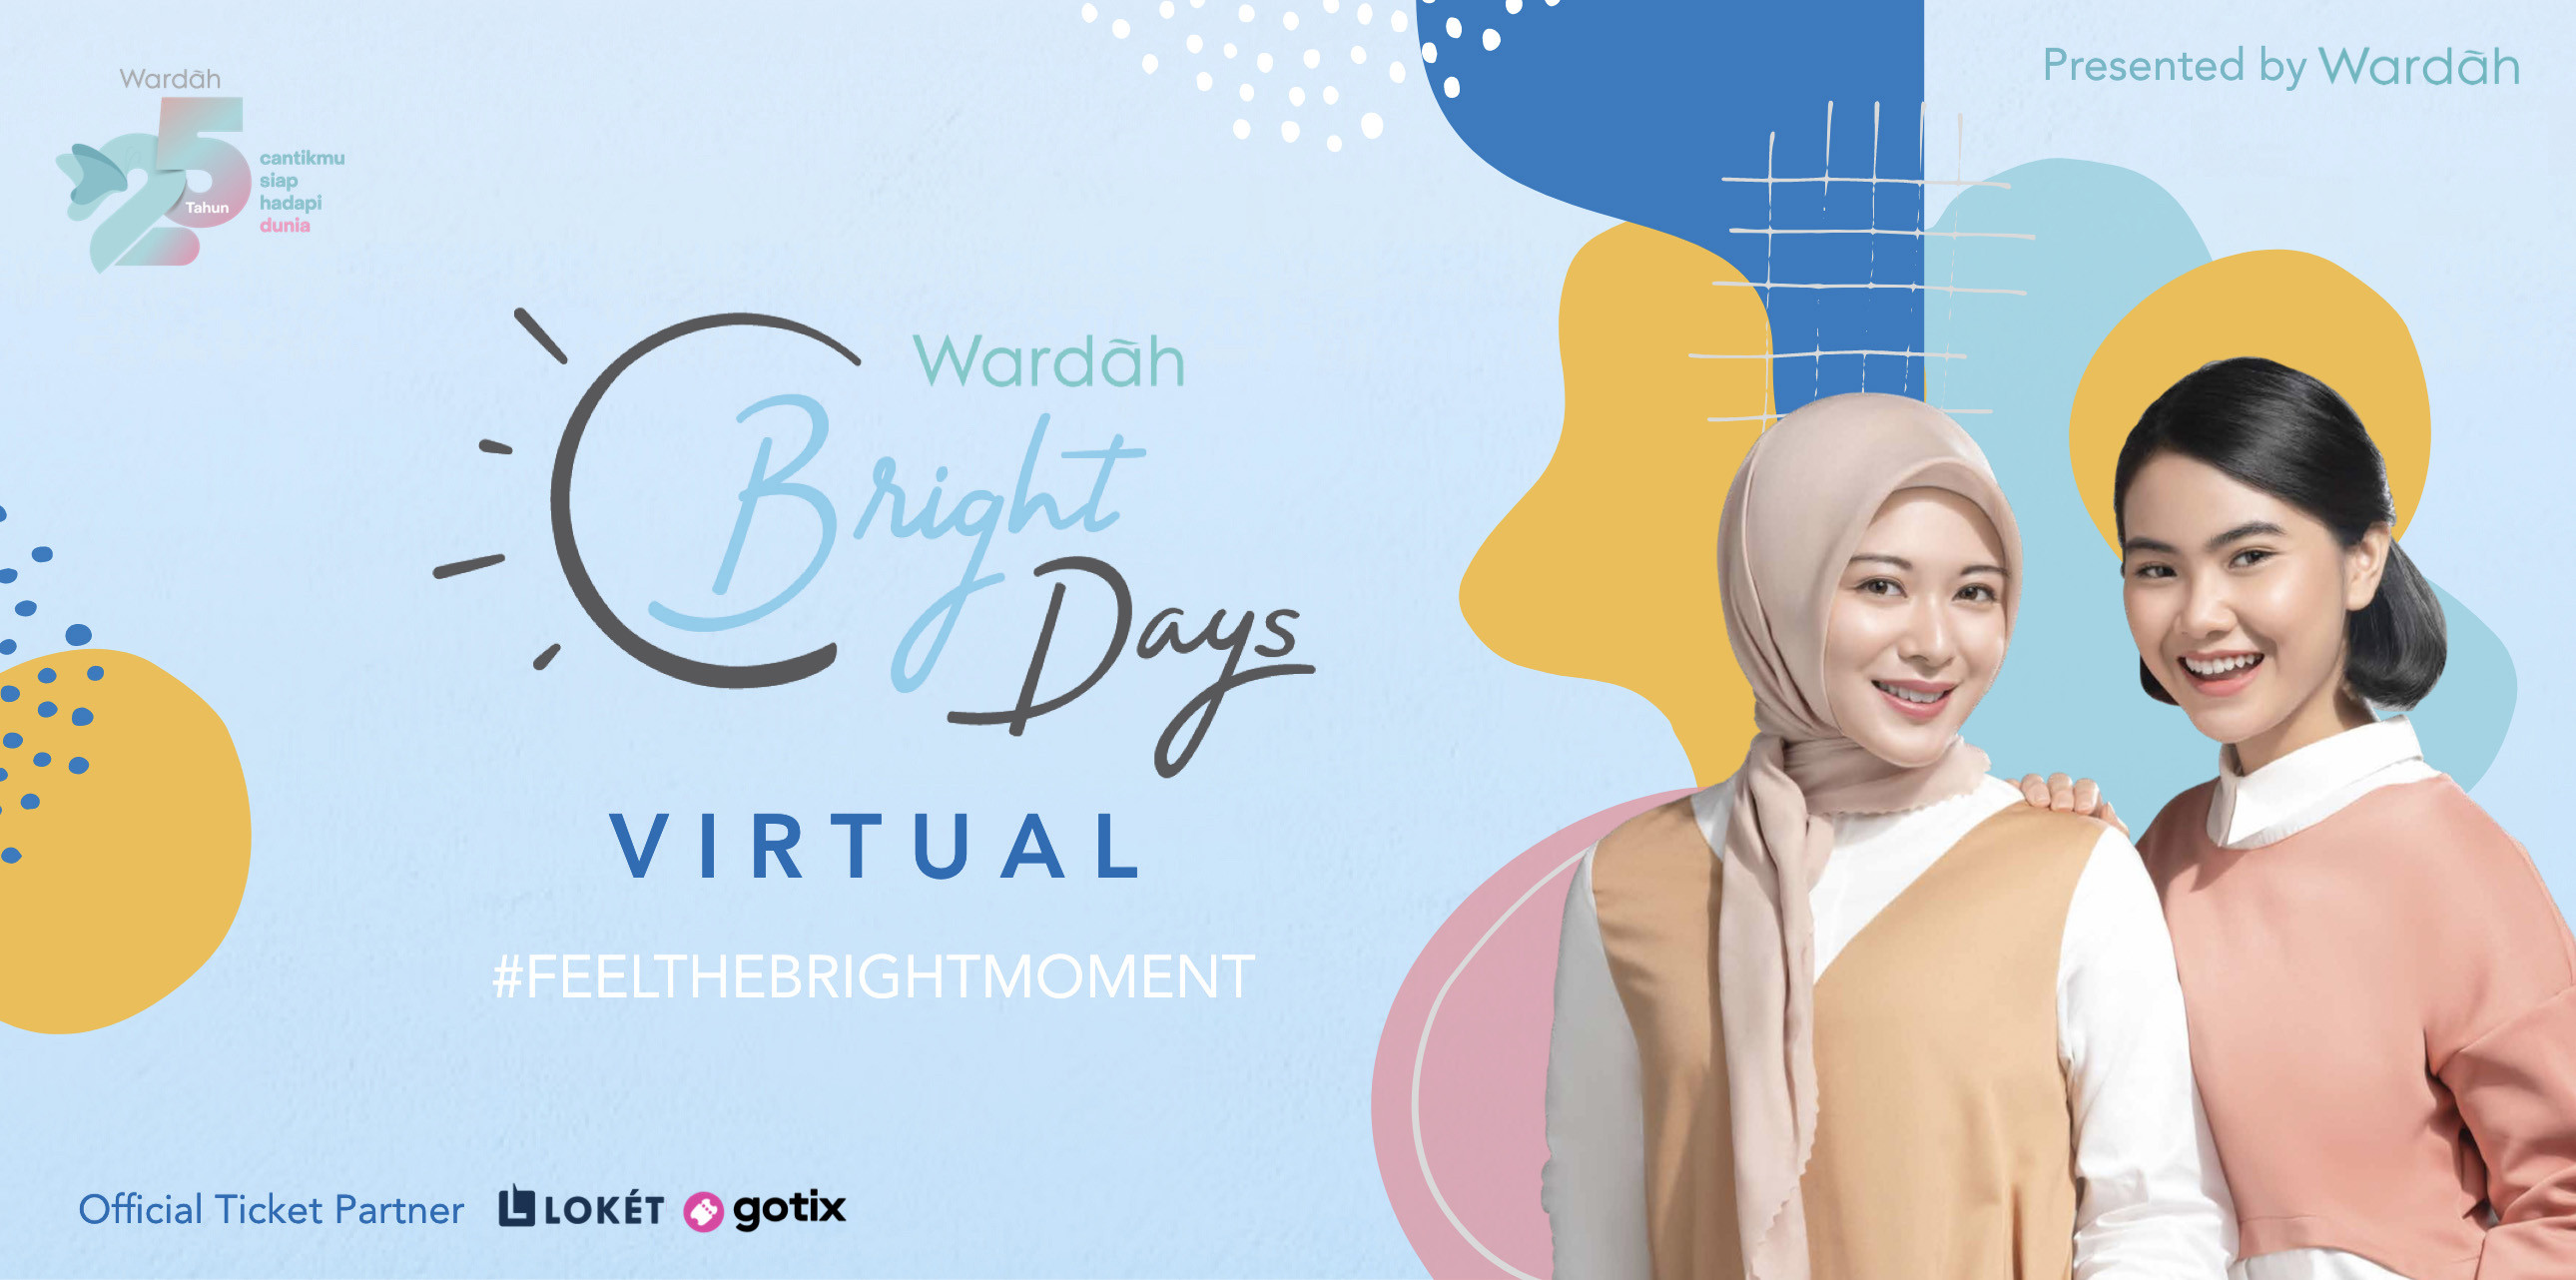 Wardah Bright Days